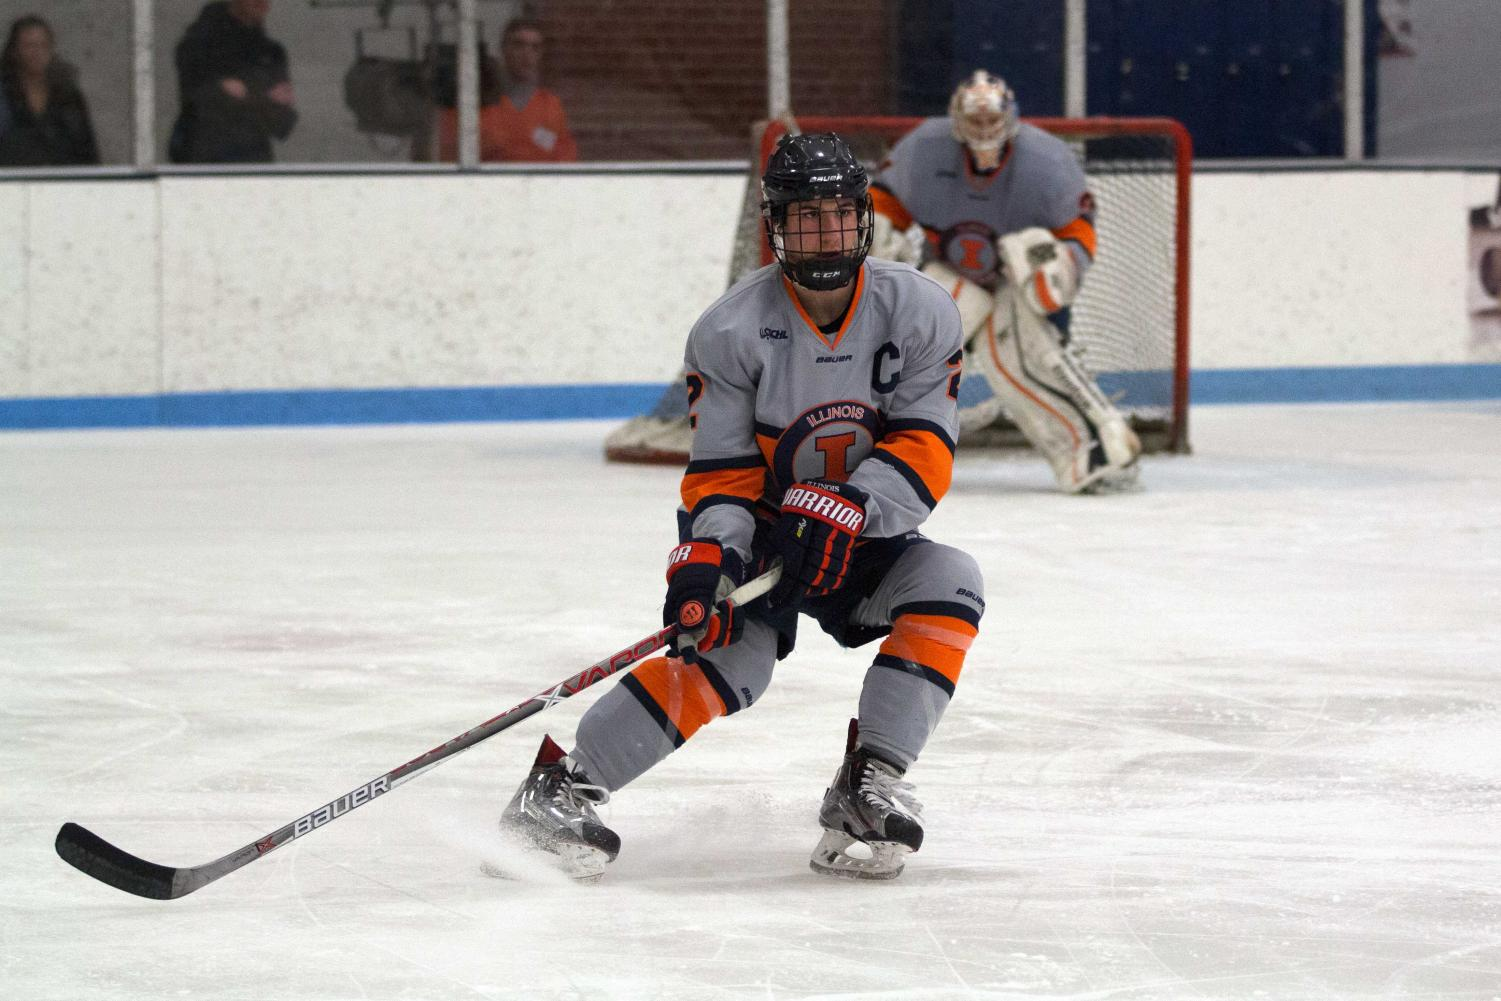 Joey Ritondale skates back into Illini's zone after Robert Morris gains possession of the puck at the Ice Arena on Saturday, Feb. 18. Illini fell to Robert Morris 3-2.